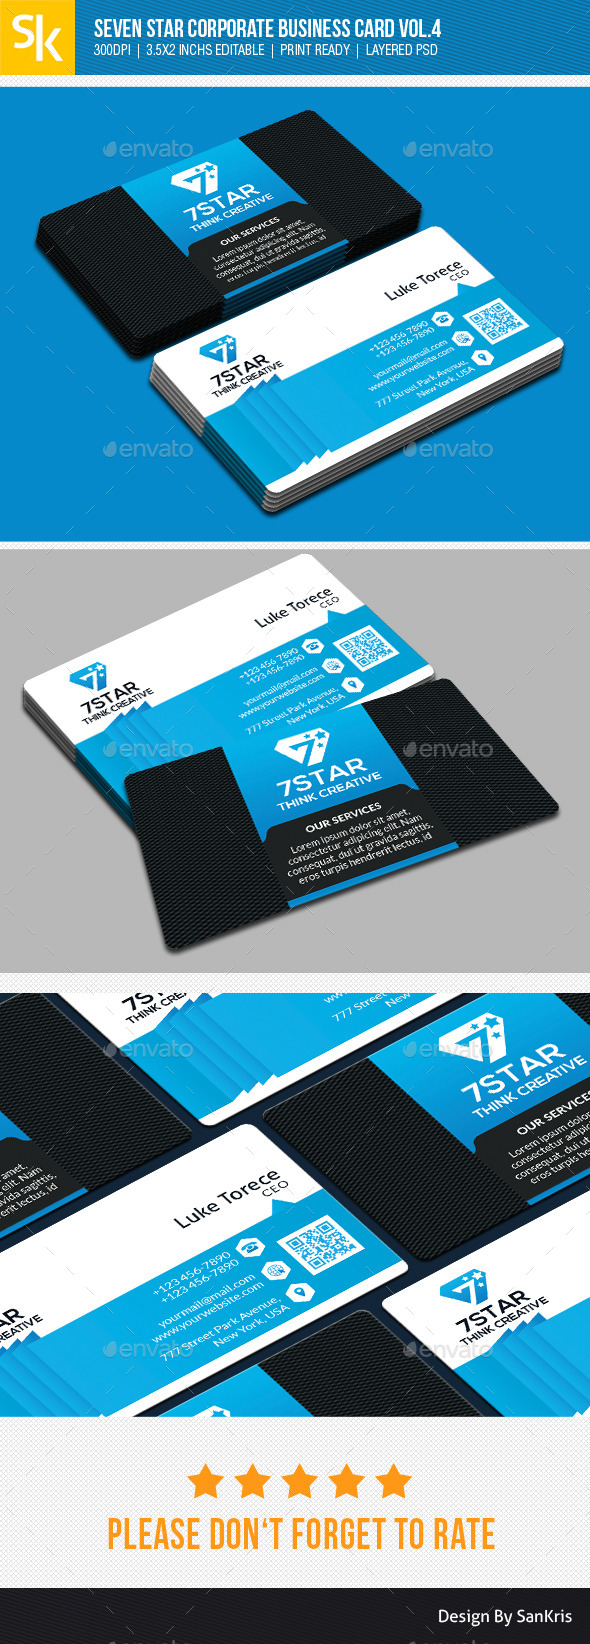 GraphicRiver Seven Star Corporate Business Card Vol.4 10871808